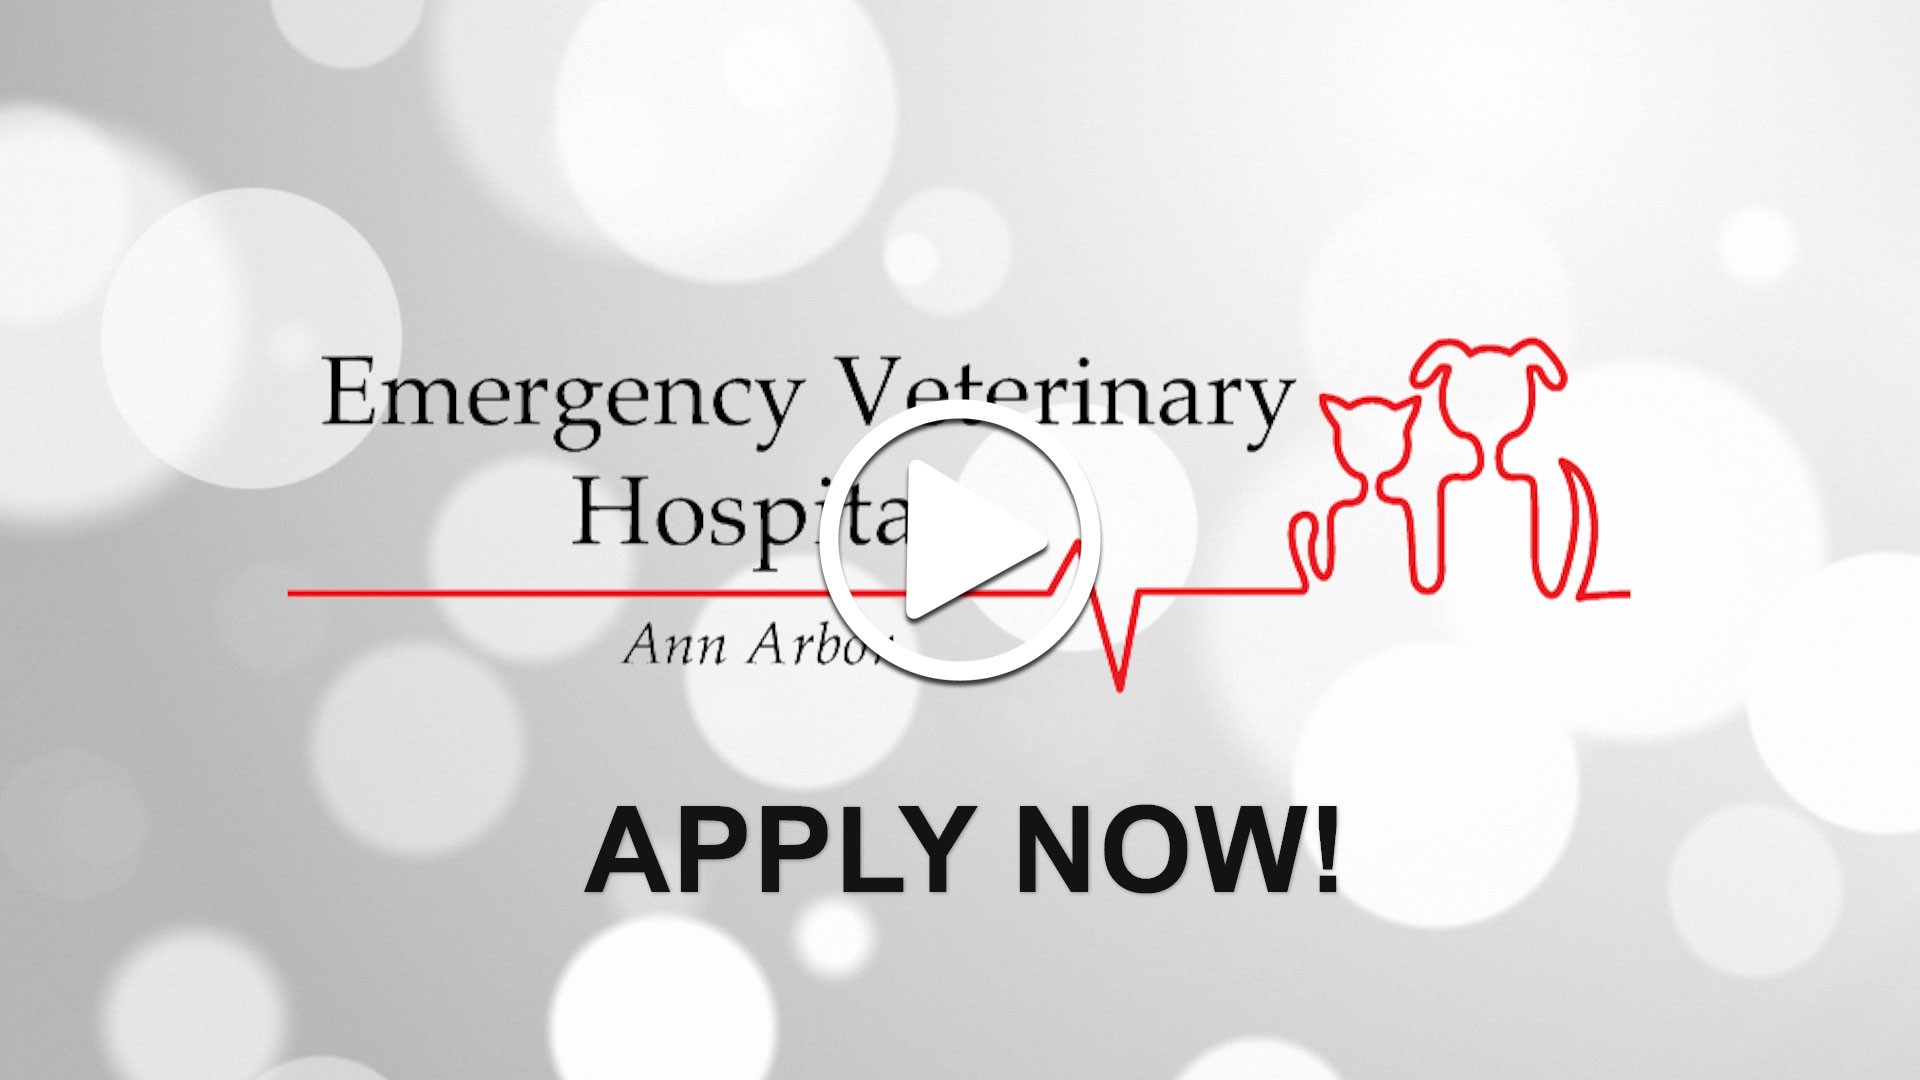 Watch our careers video for available job opening Emergency Veterinarian in Ann Arbor, Michigan in Ann Arbor, MI, USA